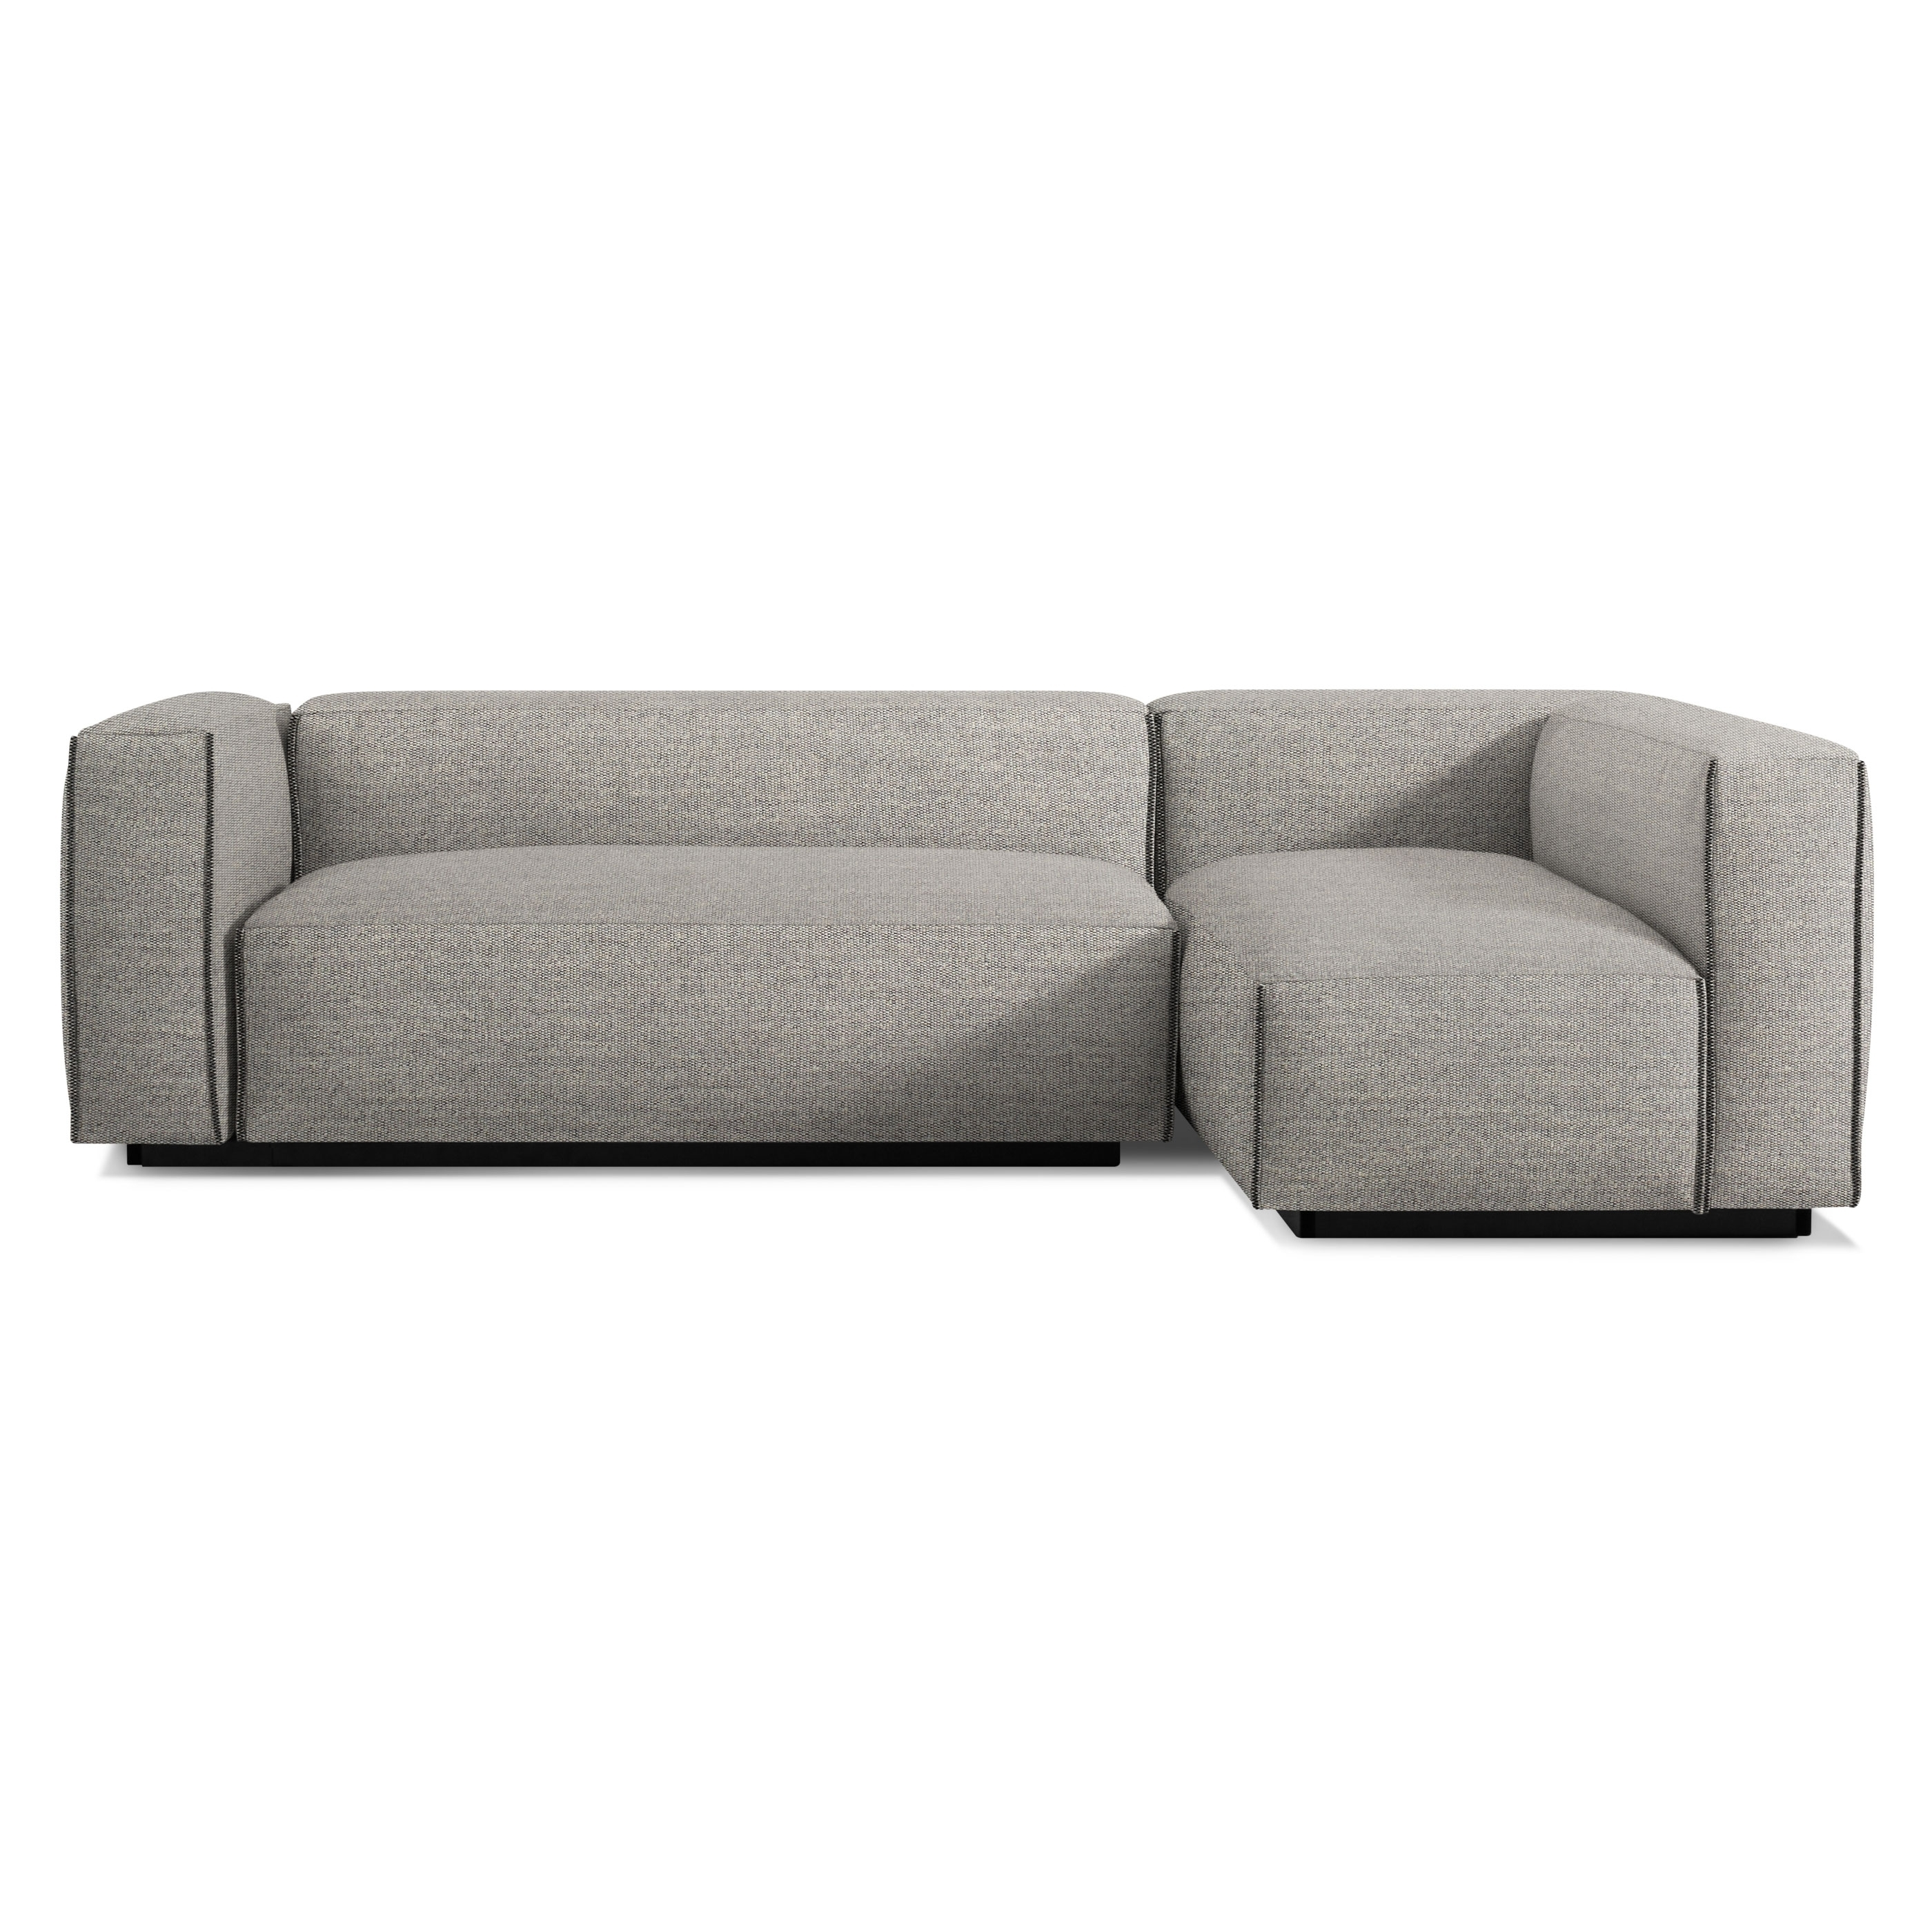 Small Sectional Sofa – Modern Sectional Sofas | Blu Dot Intended For Small Sectional Sofas (View 7 of 10)